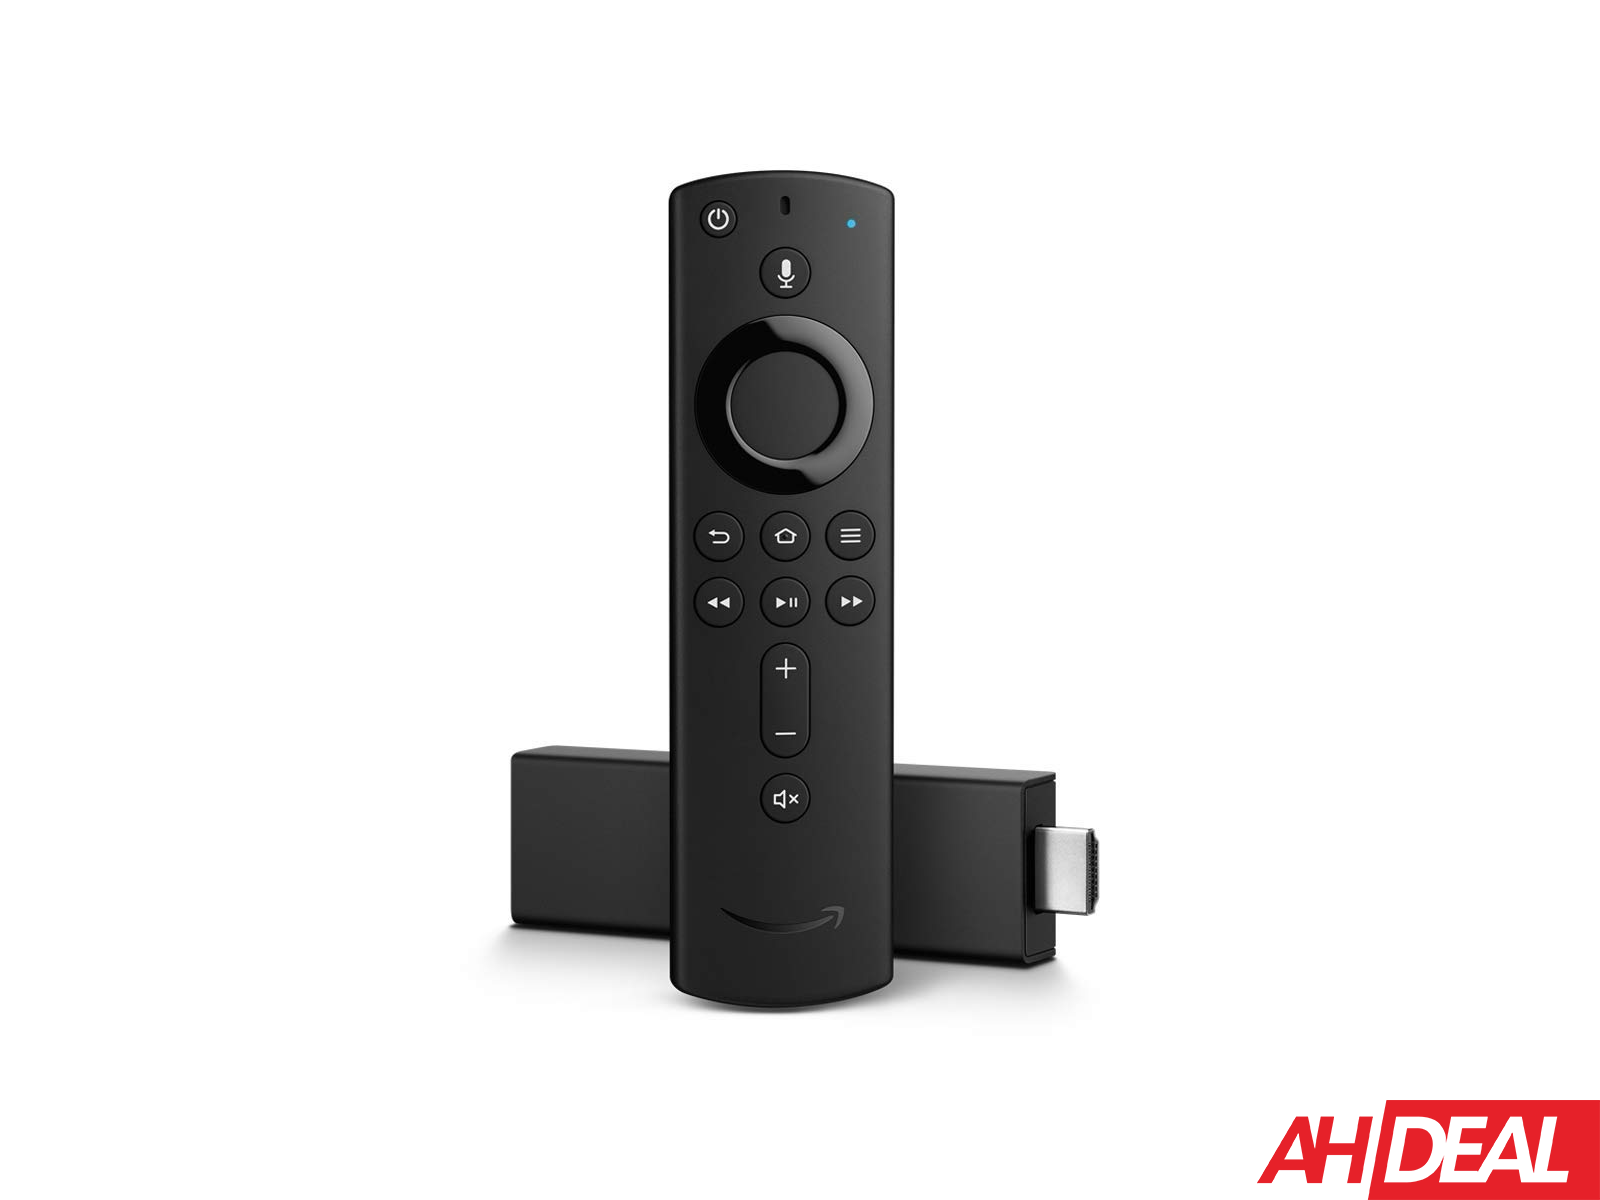 Deal Save 10 On Two Fire Tv Stick 4k At Amazon W Code October 2018 Amazon Fire Tv Stick Amazon Fire Tv Amazon Fire Stick